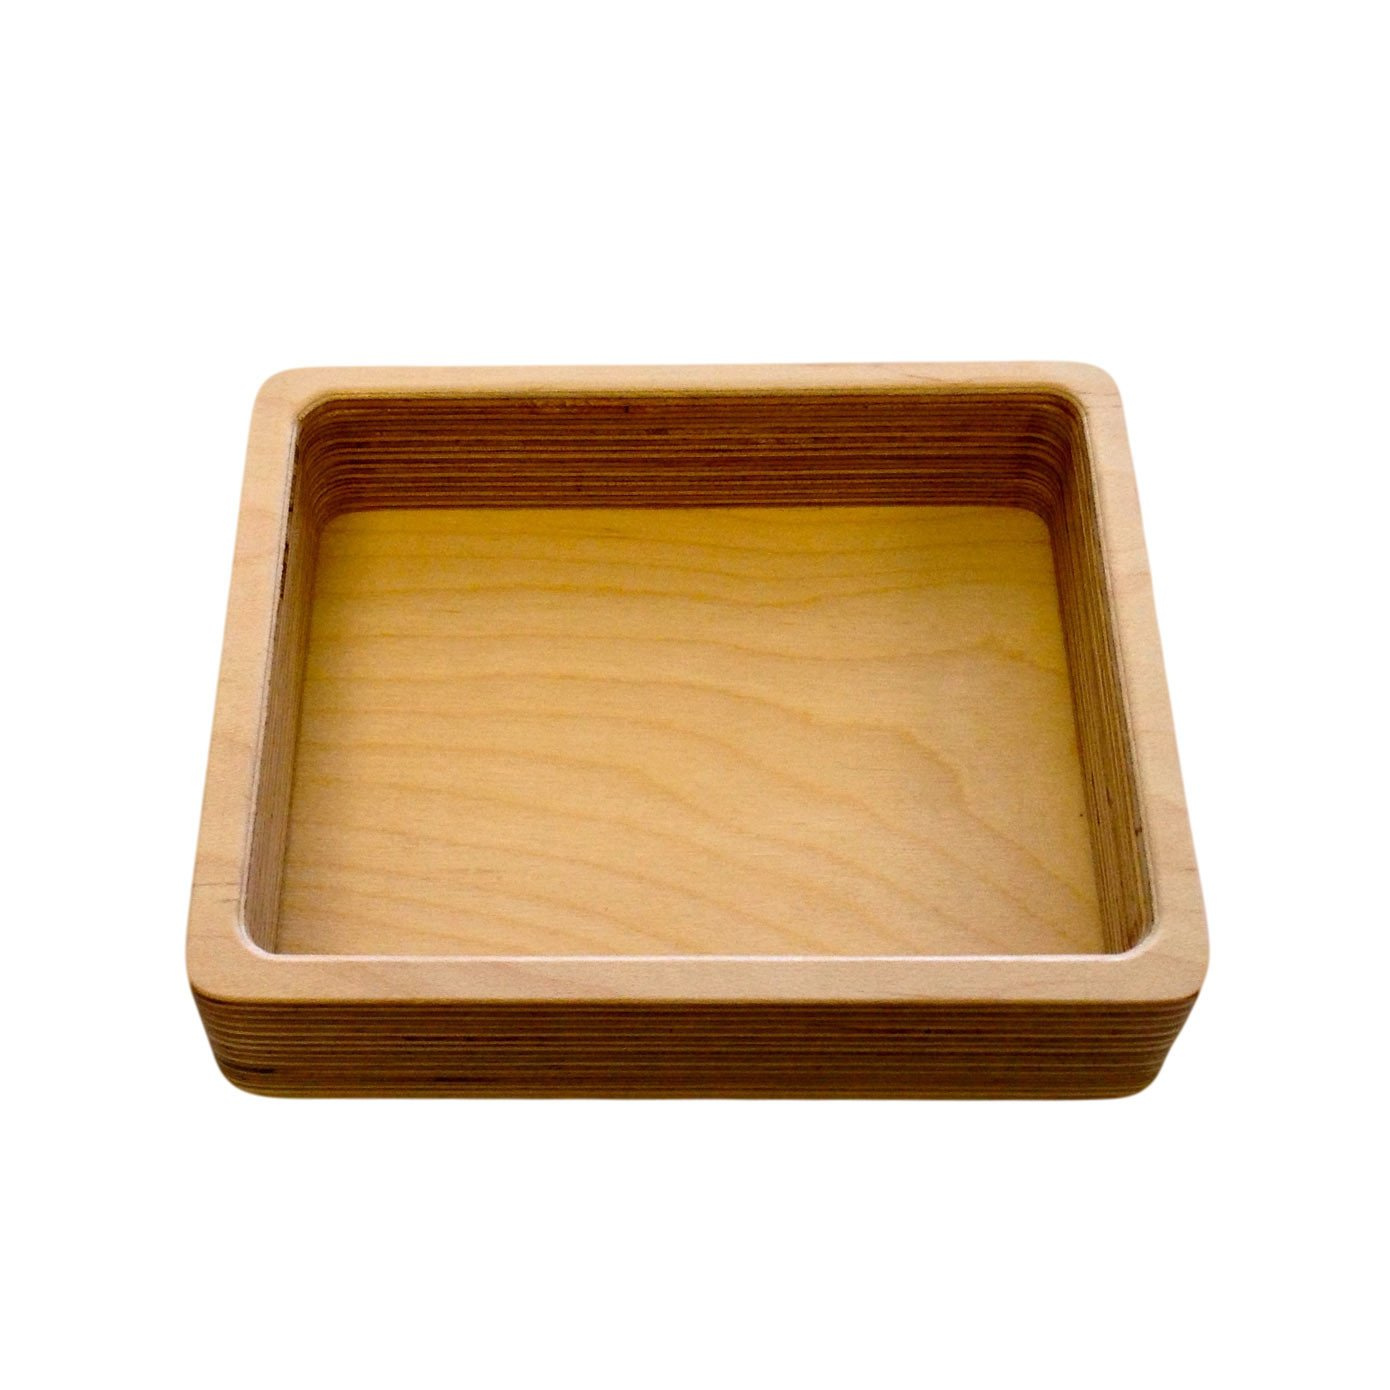 Storage And Display - Small Size 1 Part Tray